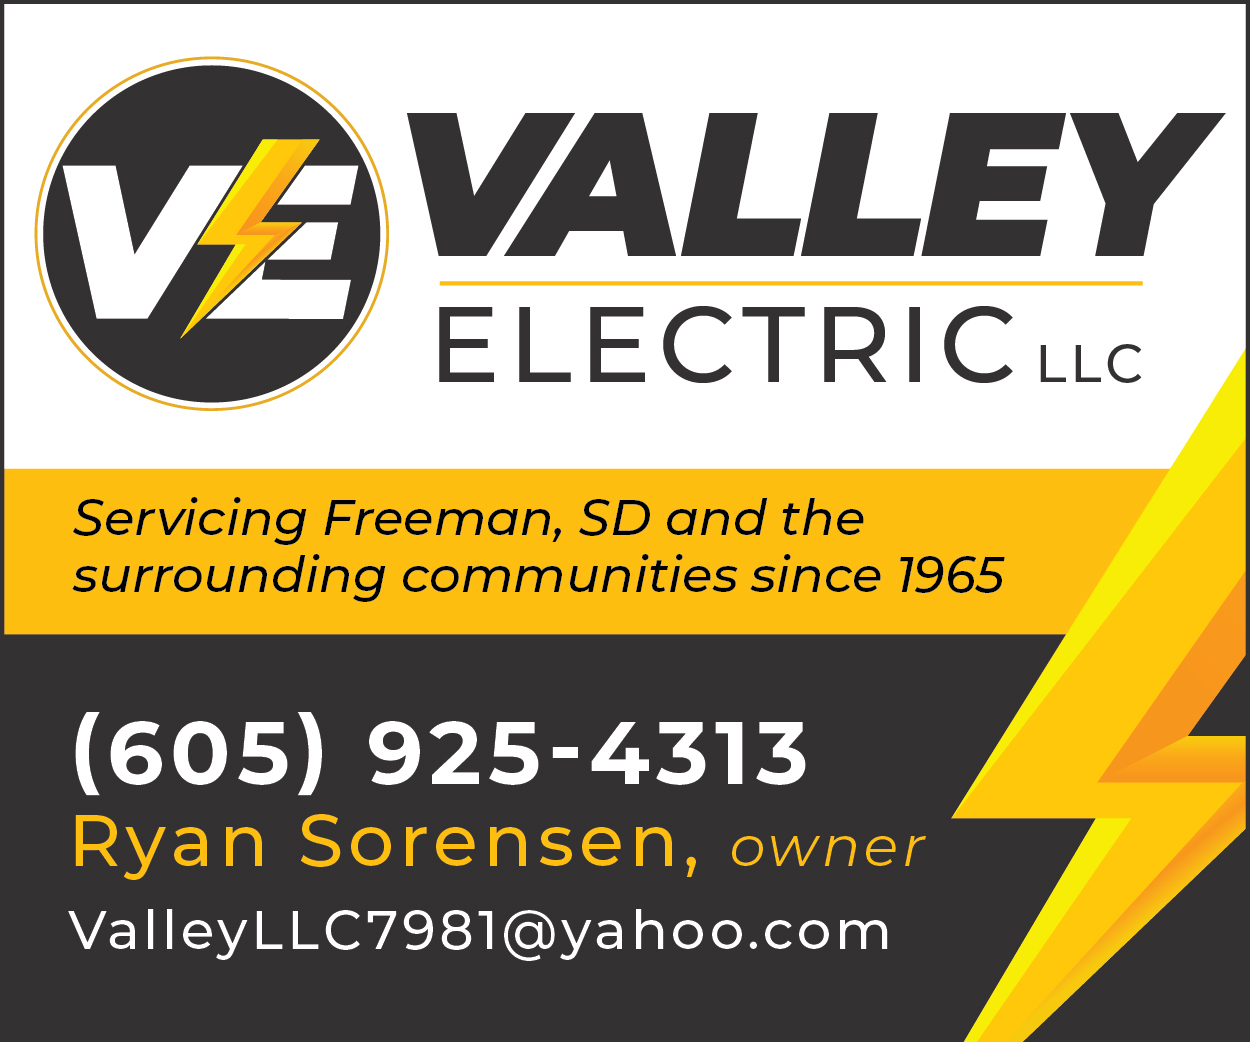 Valley Electric, LLC